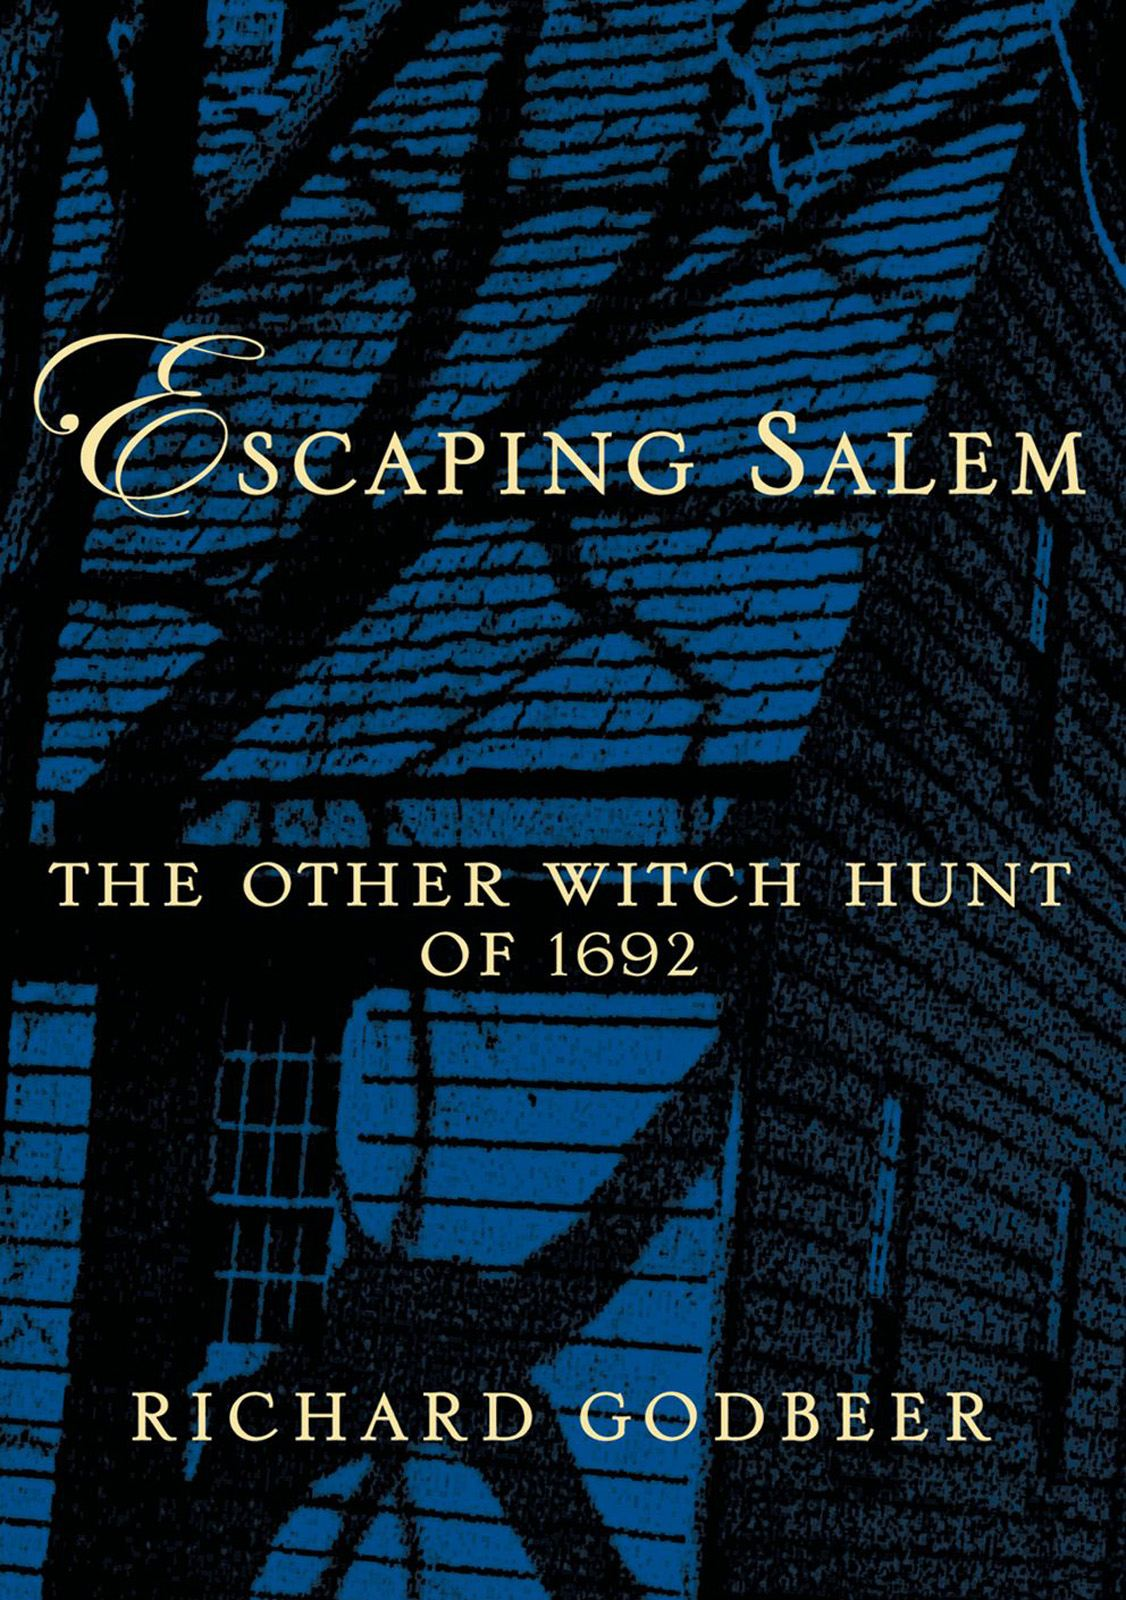 Escaping Salem:The Other Witch Hunt of 1692  By: Richard Godbeer